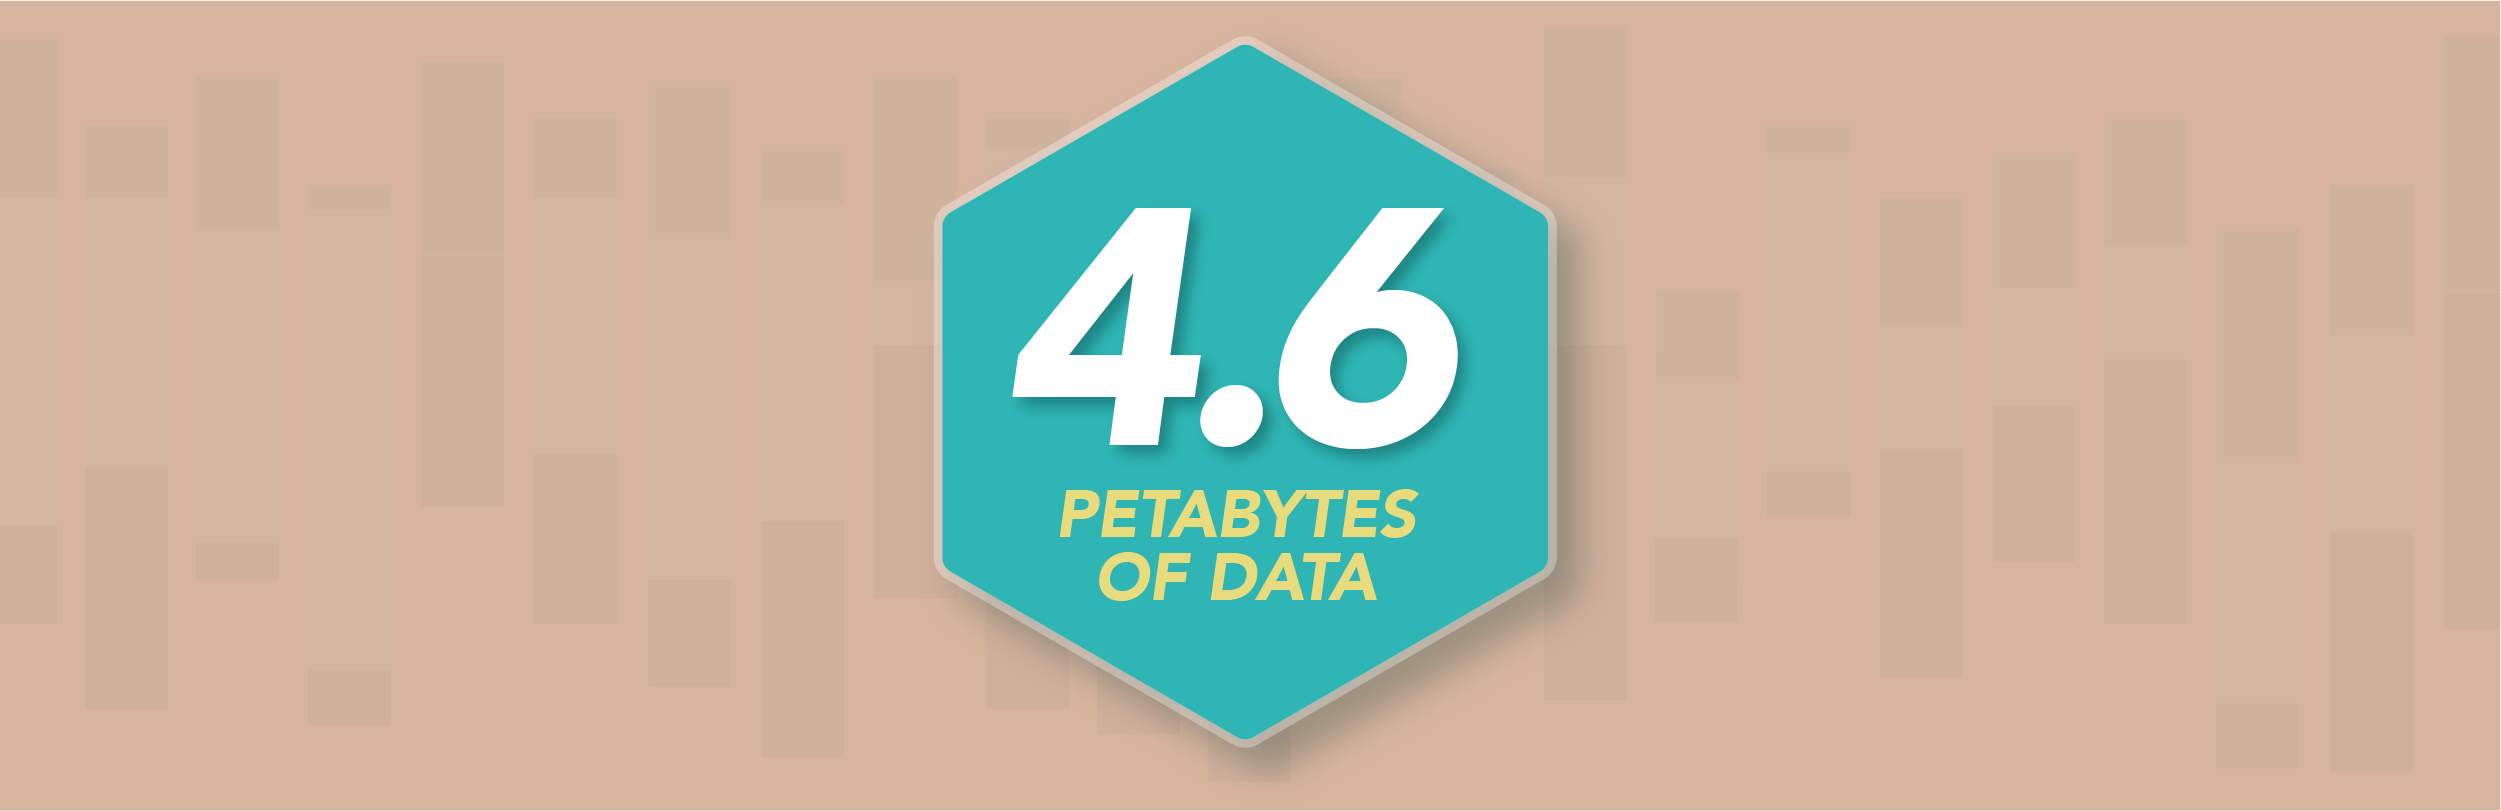 4.6 petabytes of data